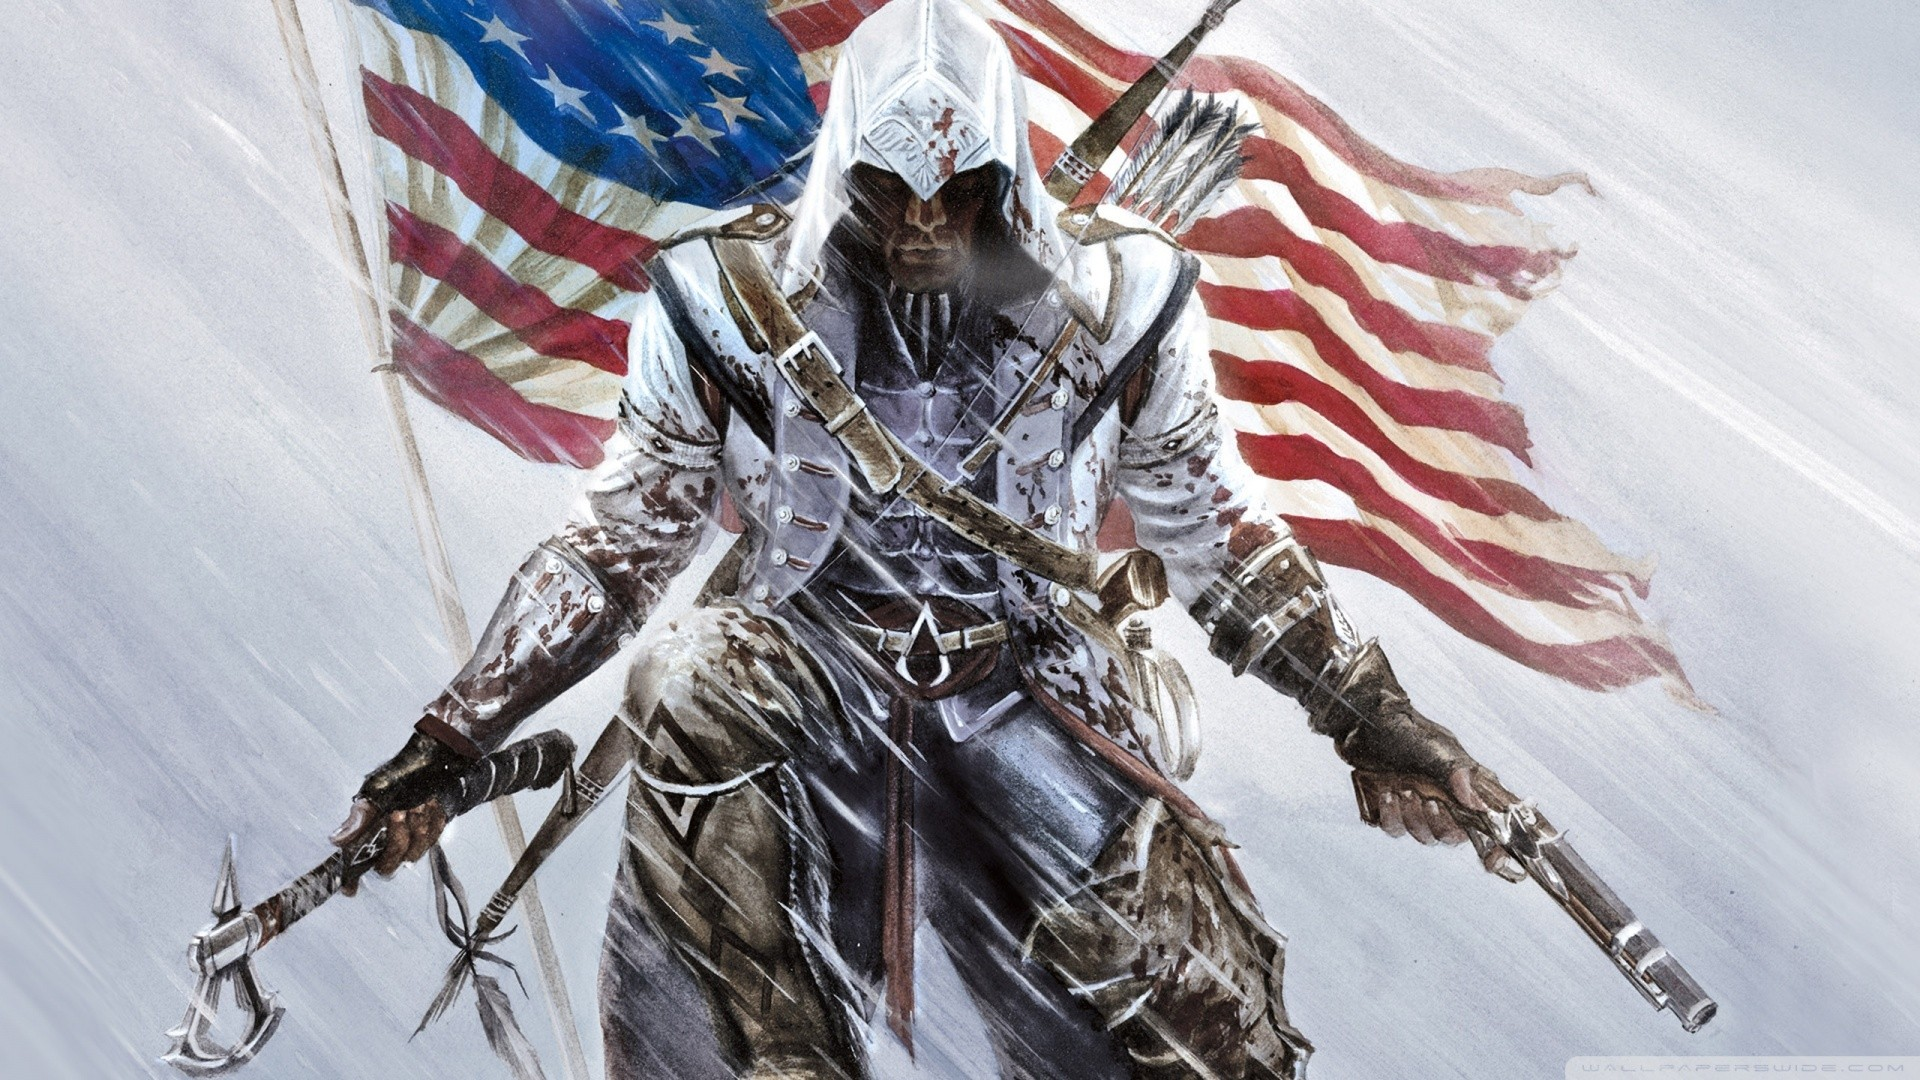 Searscards Images Assassins Creed 3 Wallpapers 5 Hd Wallpaper And